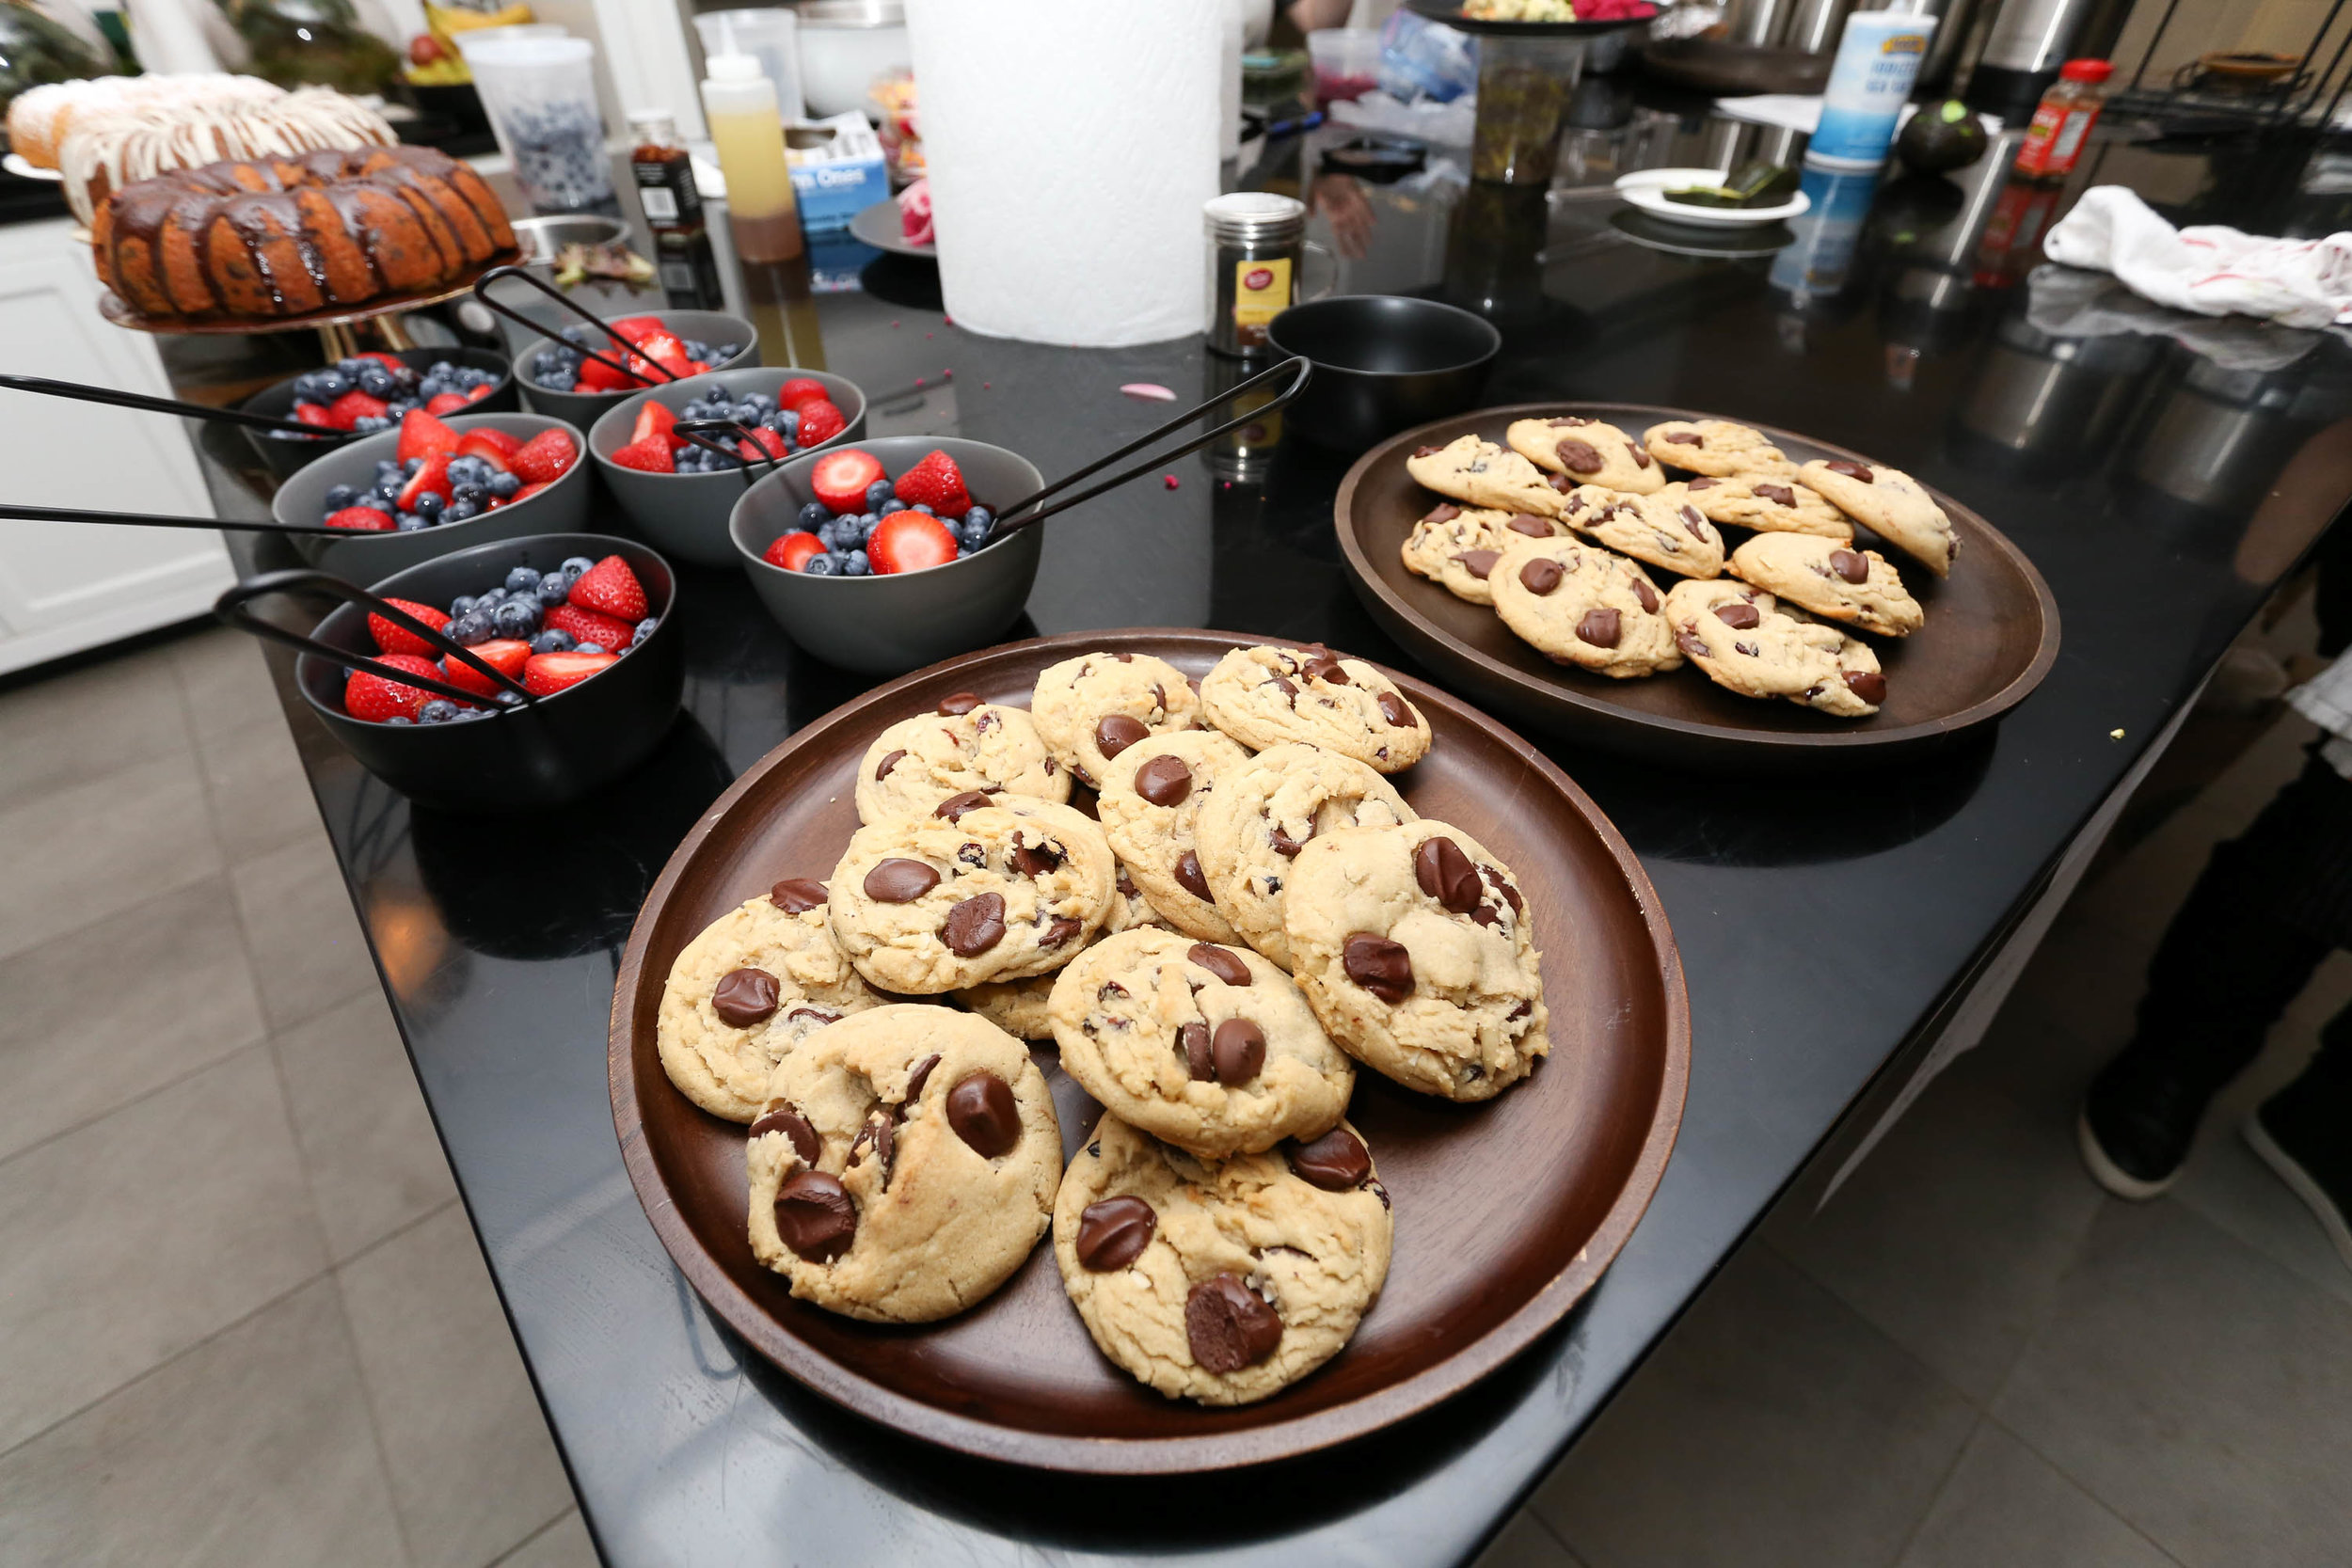 Fresh berries and delicious chocolate chip cookies